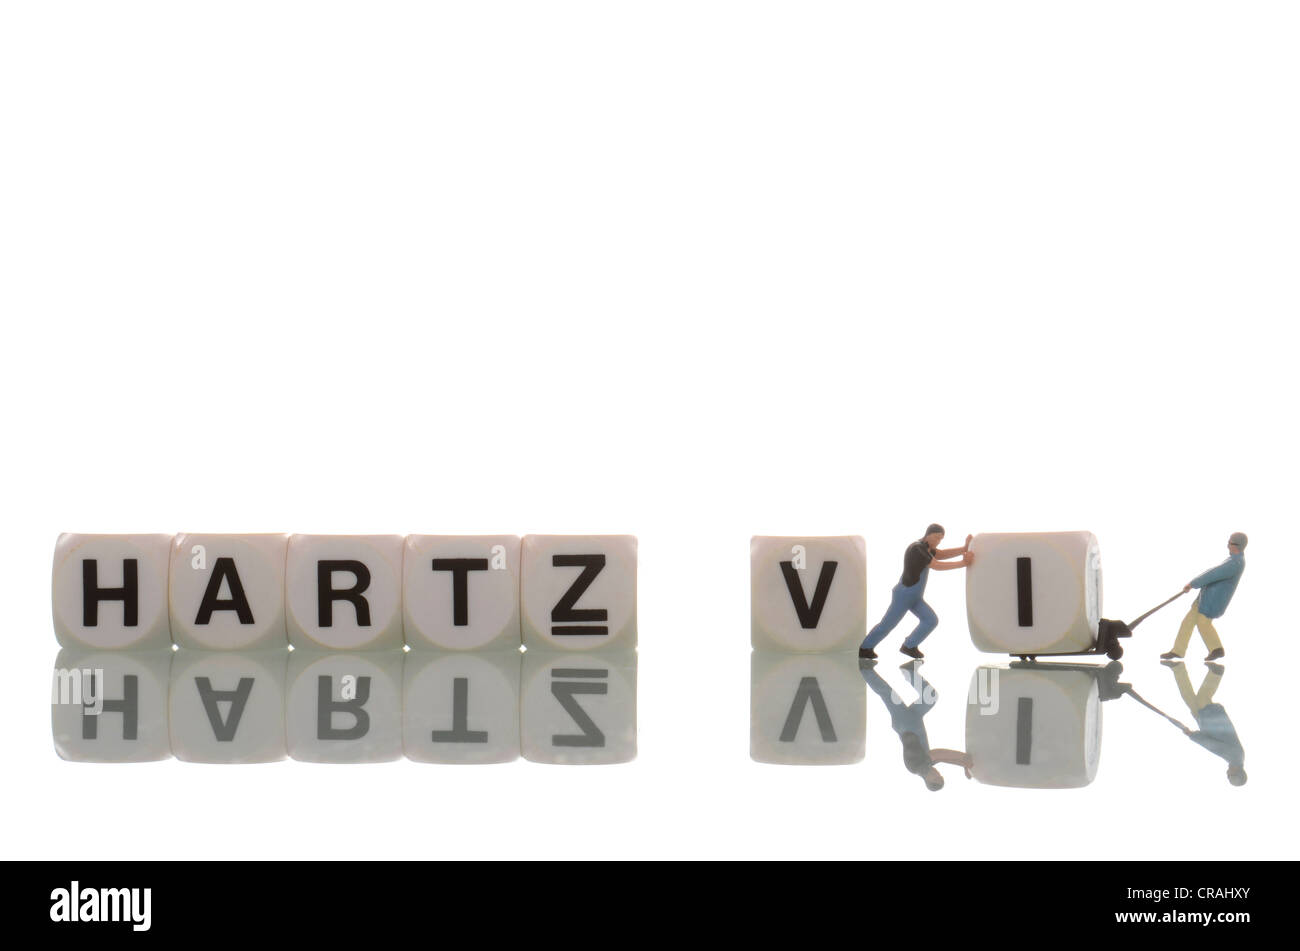 Two small figurines of workmen turning lettering for 'Hartz IV' into 'Hartz V', symbolic image - Stock Image